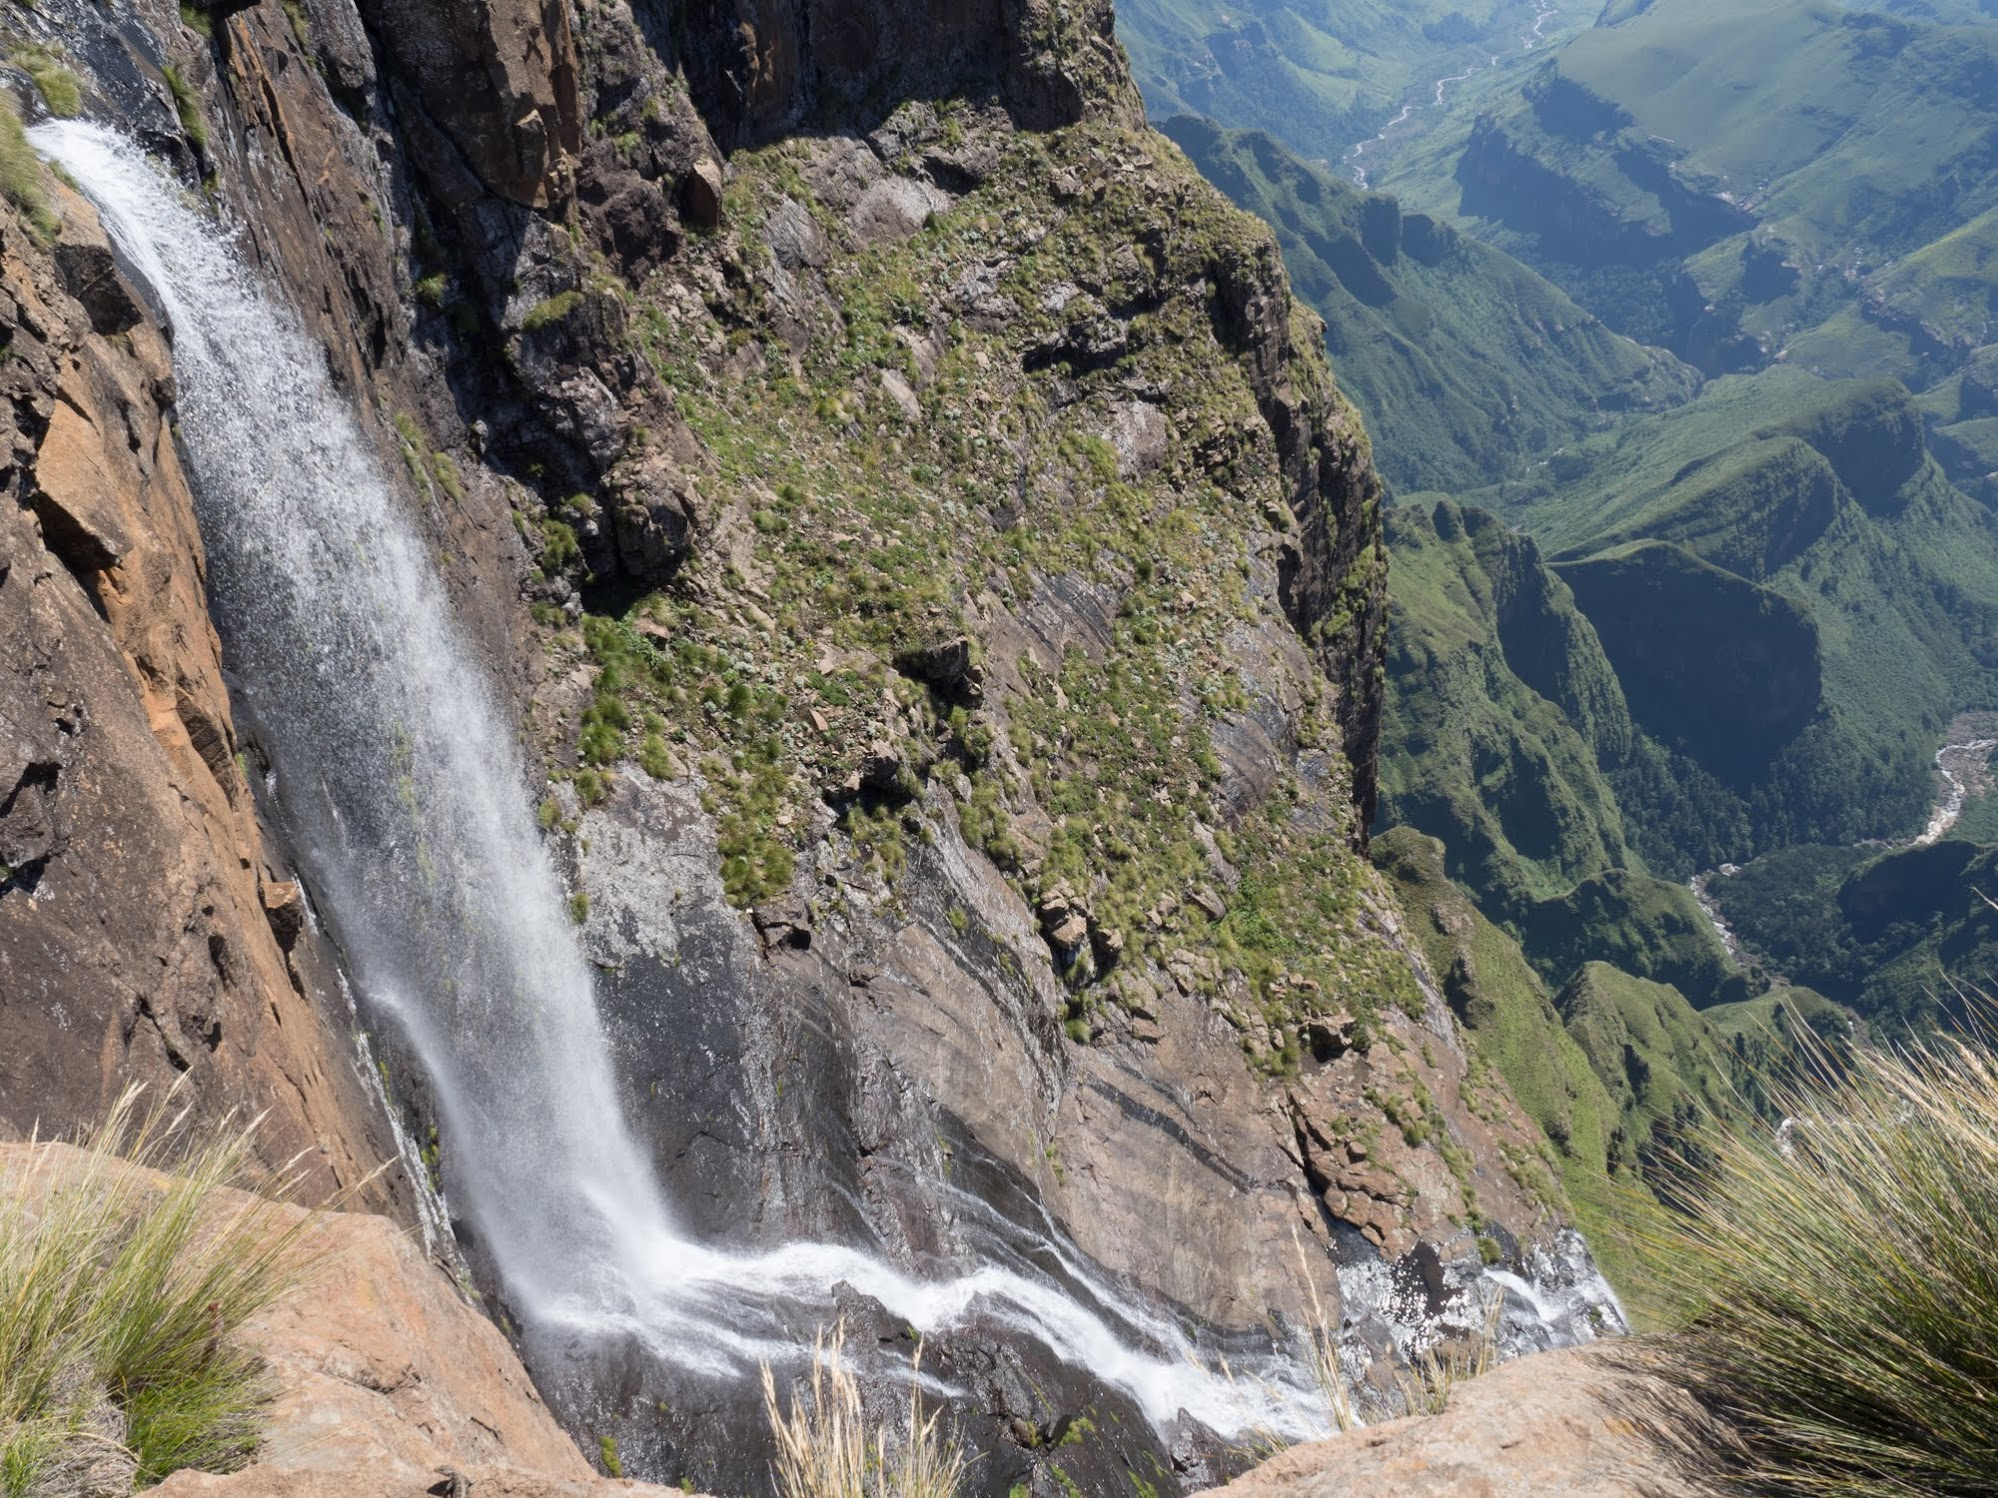 The tallest waterfall in Africa